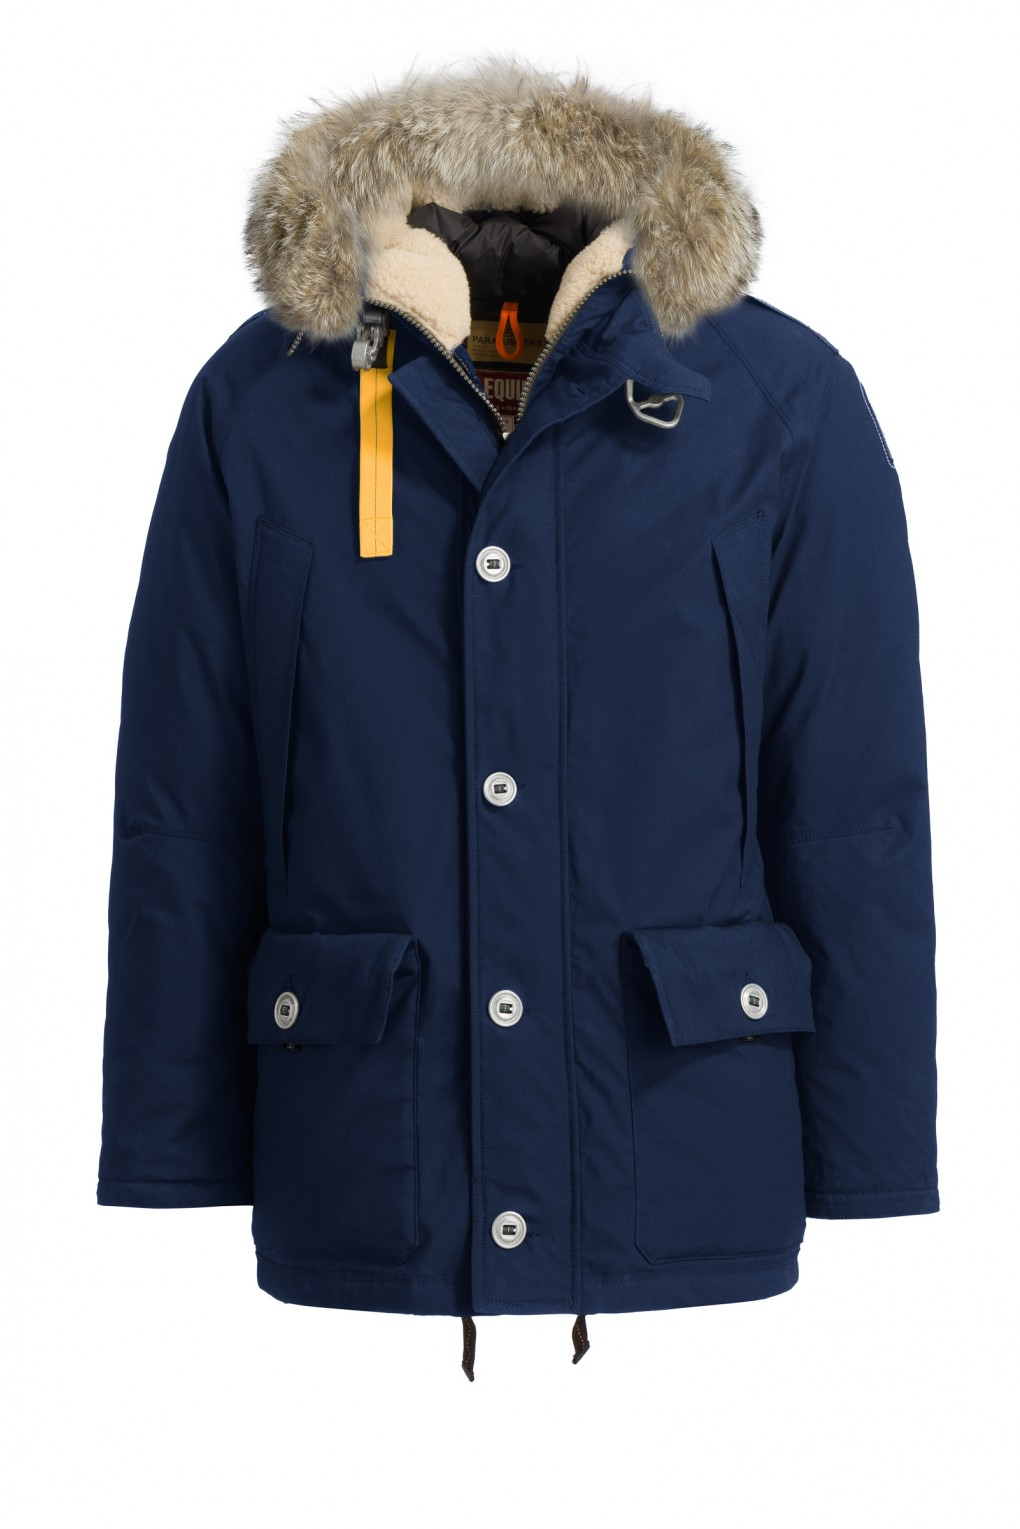 parajumpers inuit parka on effortless gent